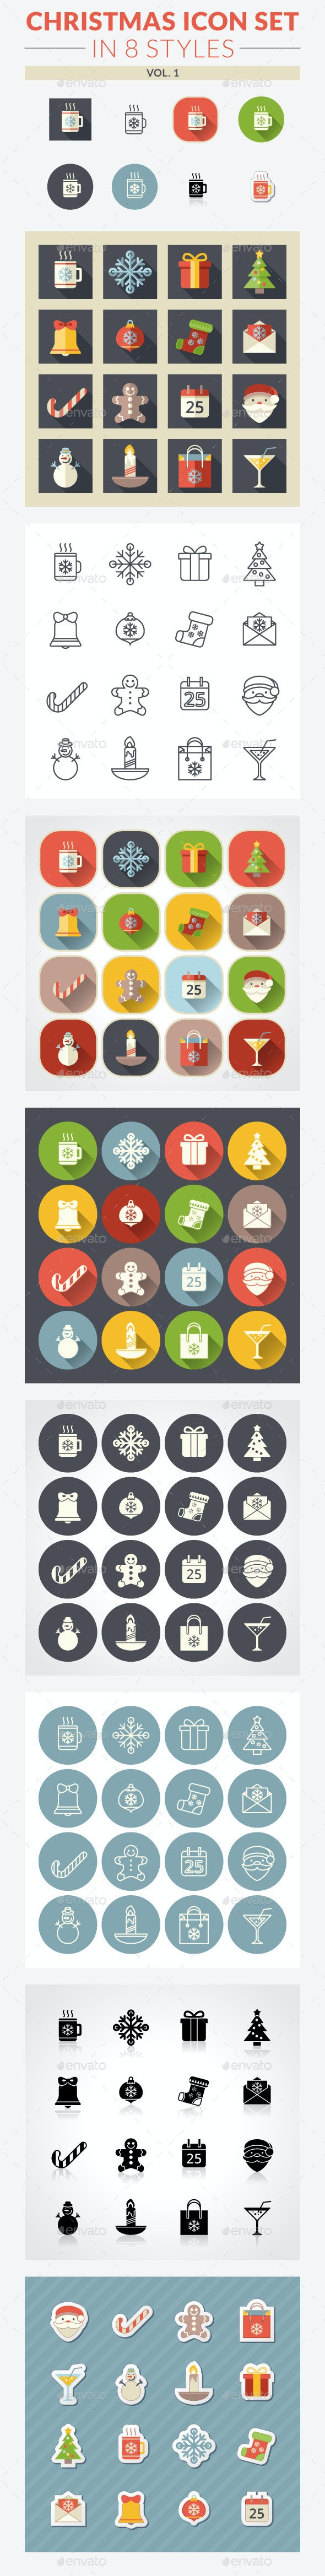 Christmas Icon Set. Vol. 1